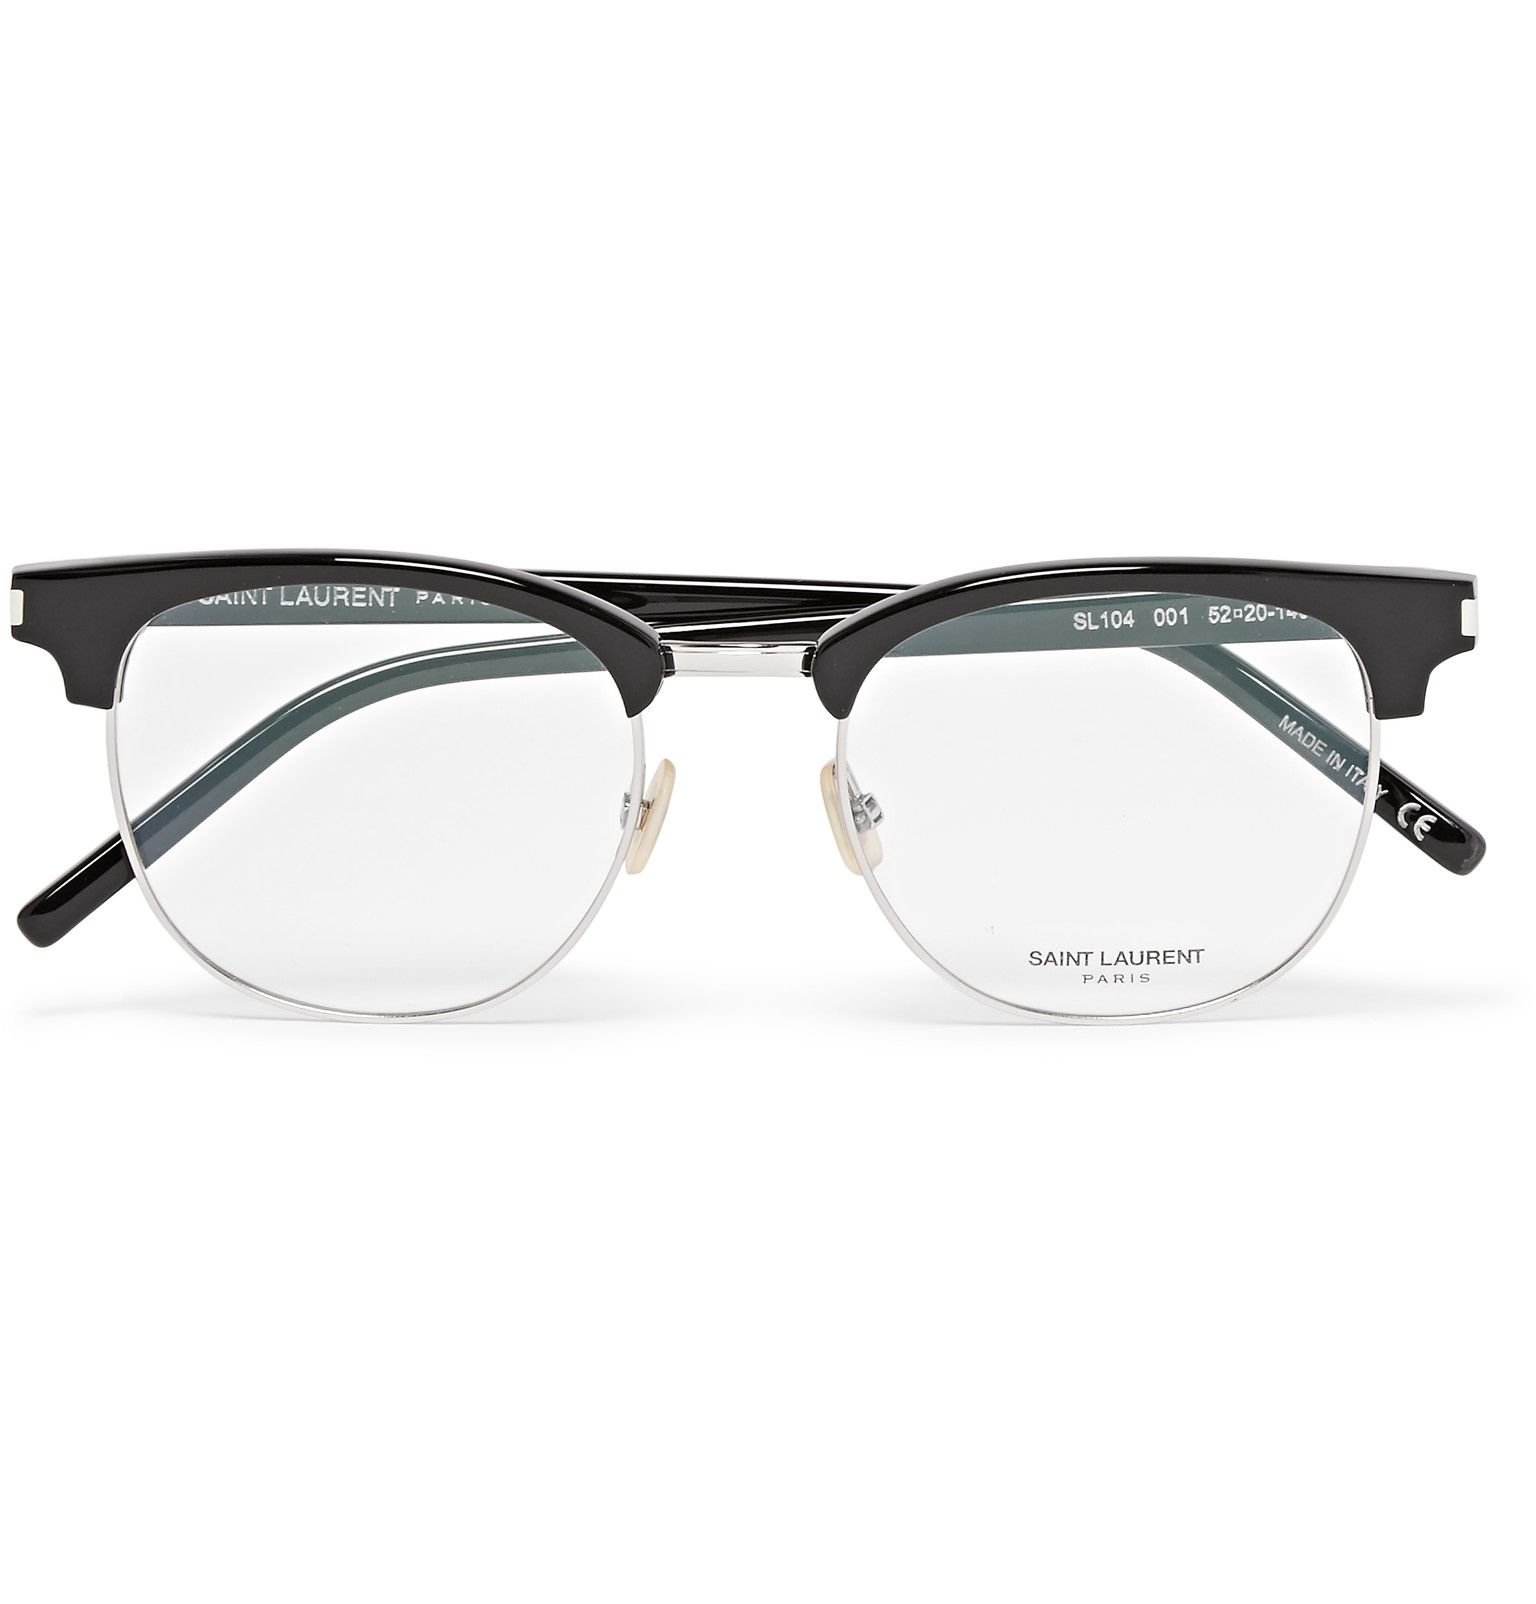 Raise Your Sights With These Glasses By Parisian Label A Href Http Www Mrporter Com Mens Designers Saint L With Images Designer Glasses For Men Glasses Optical Glasses